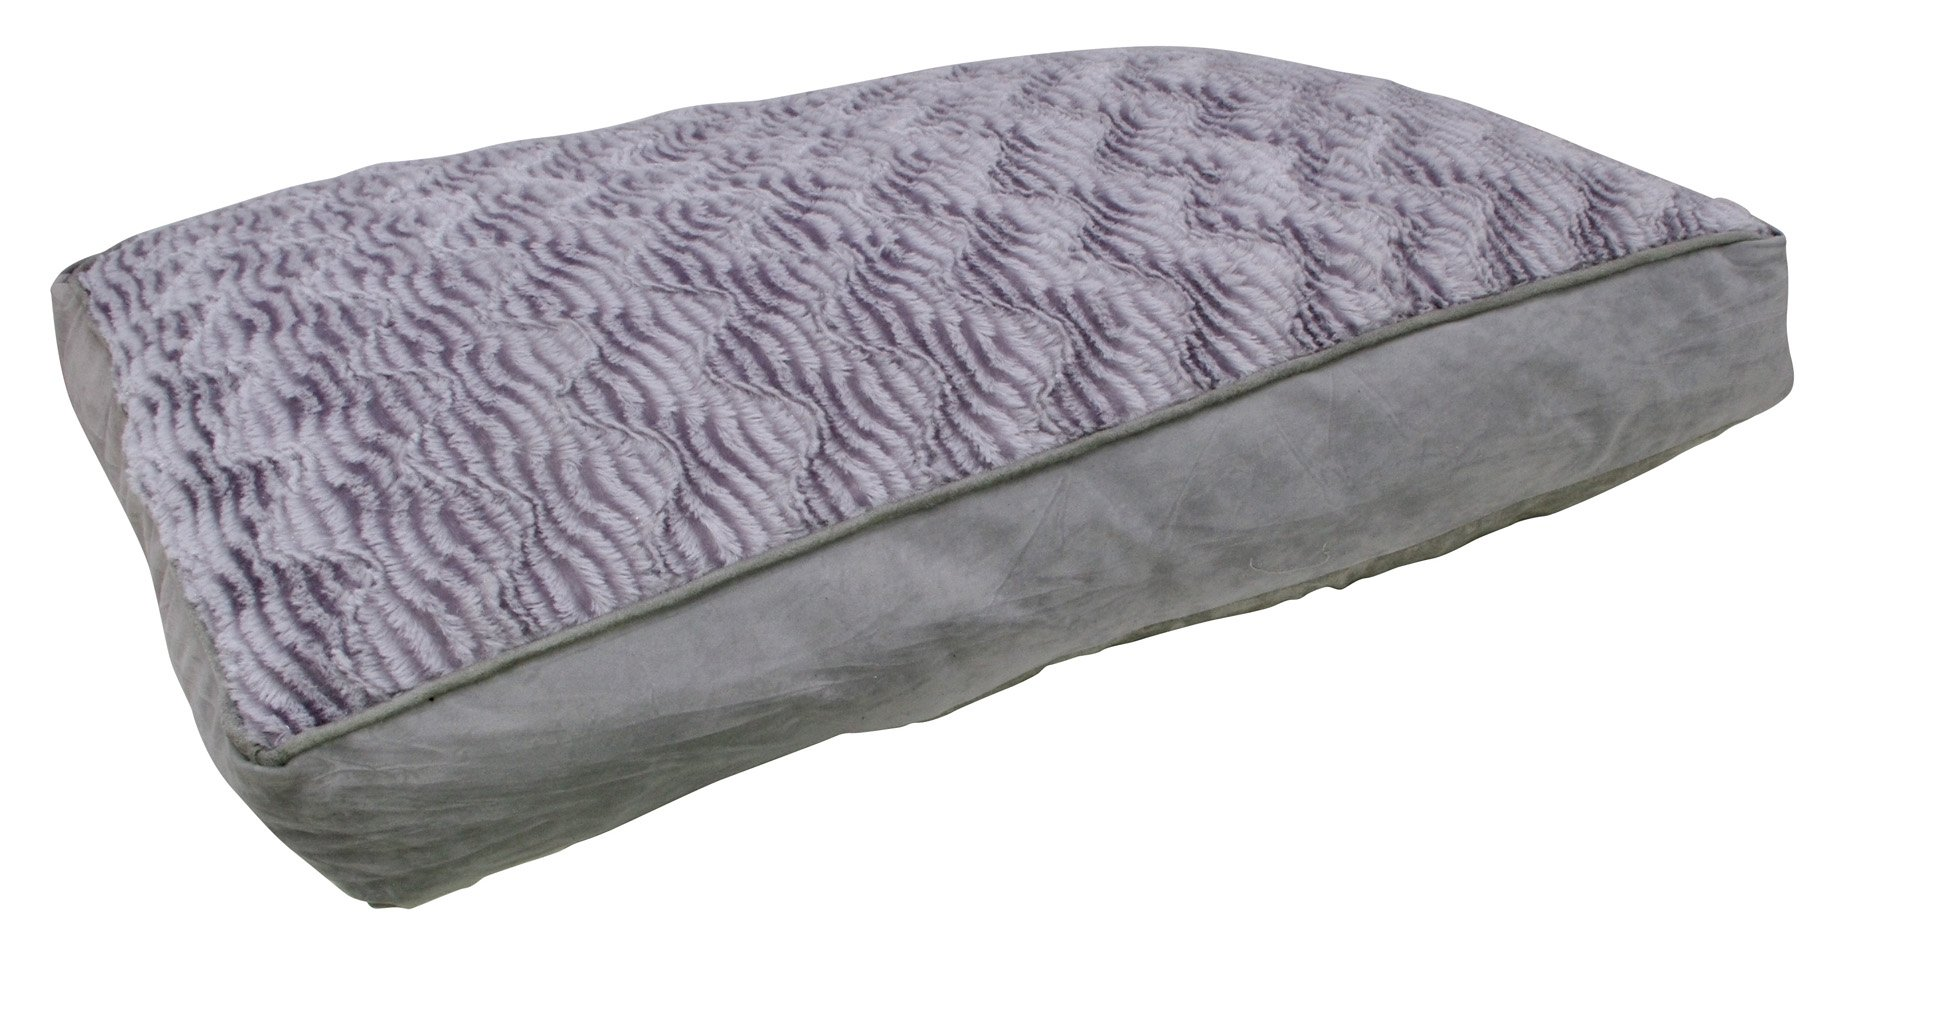 Dogit Style Wild Animal Large Mattress Bed, Gray